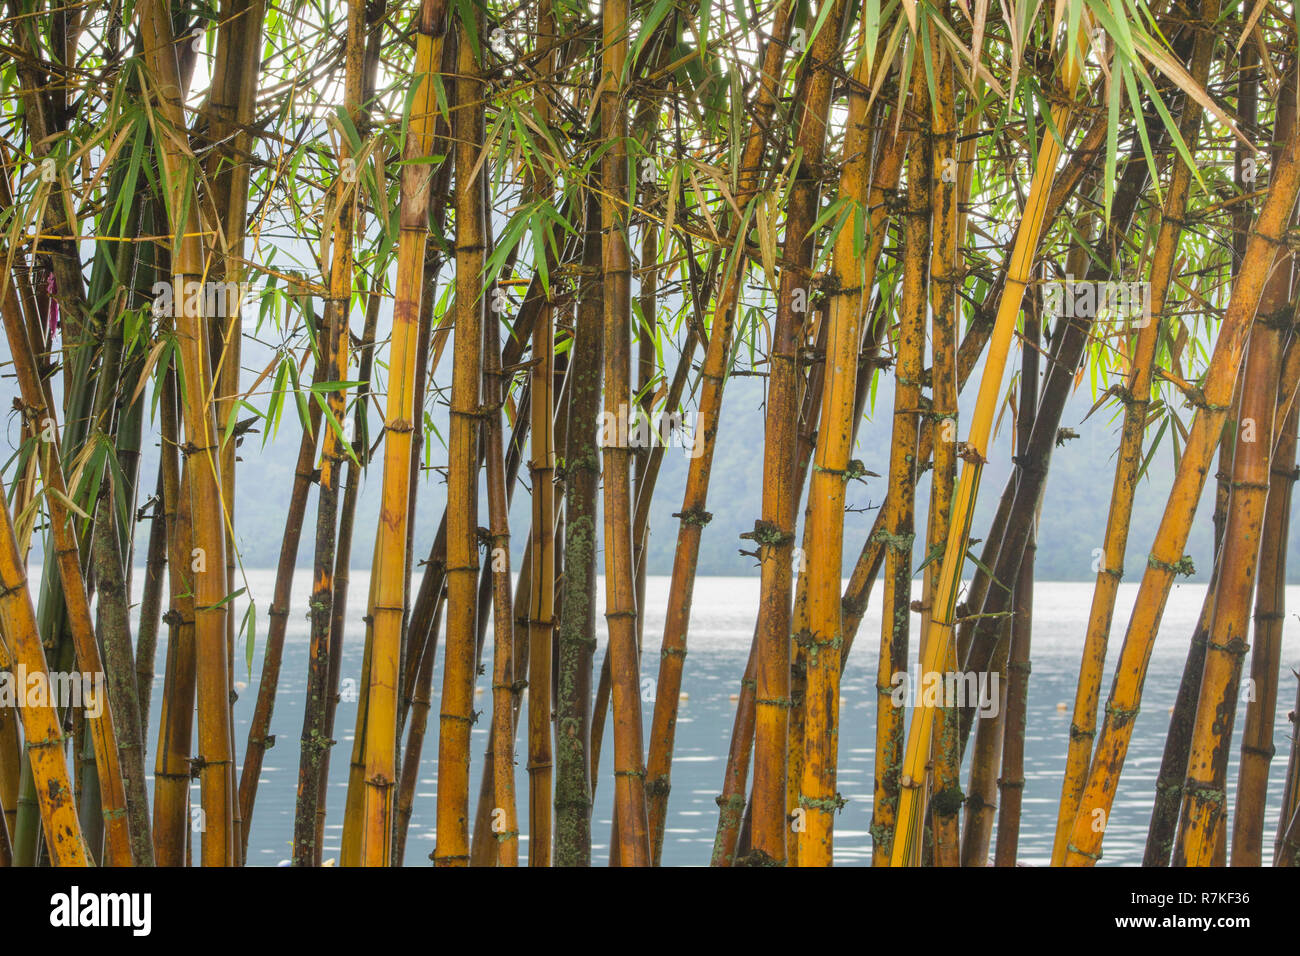 Bamboo stalks form a curtain in front of a large body of water in Bali - Stock Image